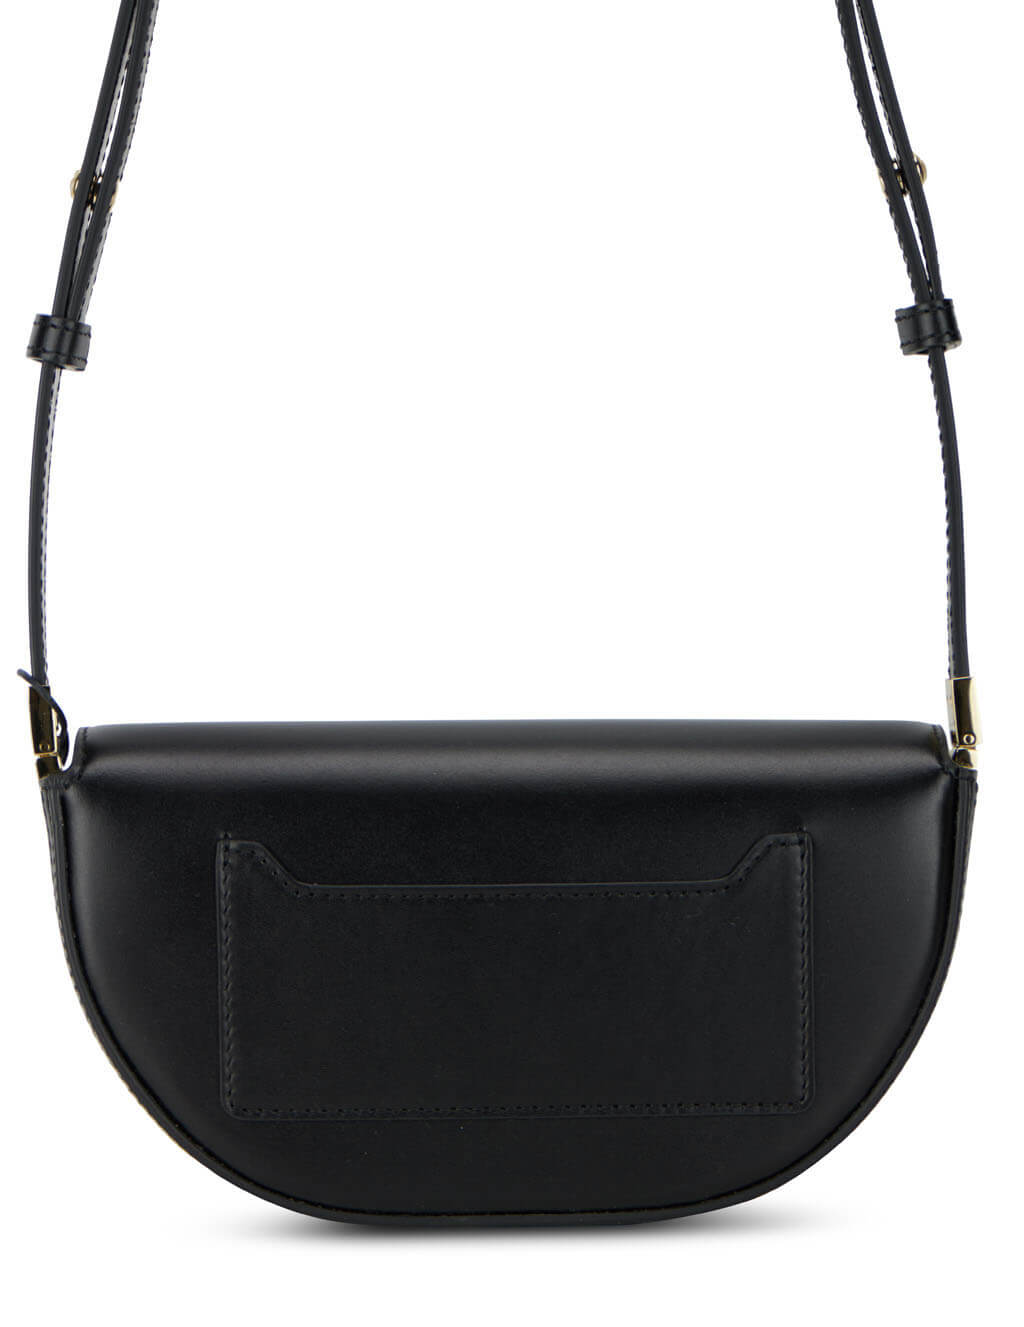 Burberry Women's Black Mini Olympia Bag 8035984 A1189